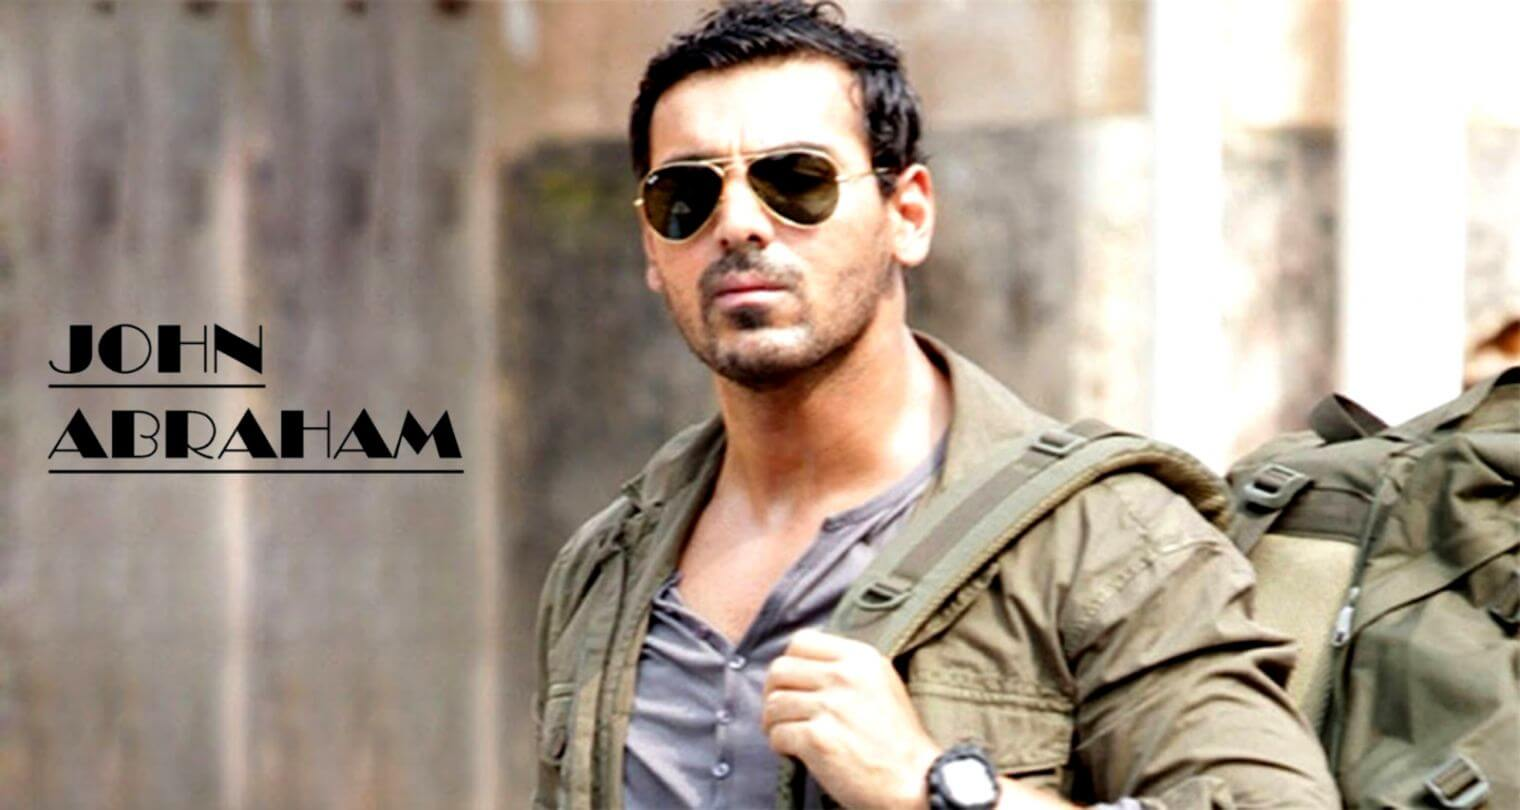 John Abraham Wife, Height, Net Worth, Age, Images(pic), Religion, Biography, Movie, Date Of Birth, Family, Father, Son, Education, Awards, Wiki, Twitter, Facebook, Instagram, Imdb, Website, You ( (51)